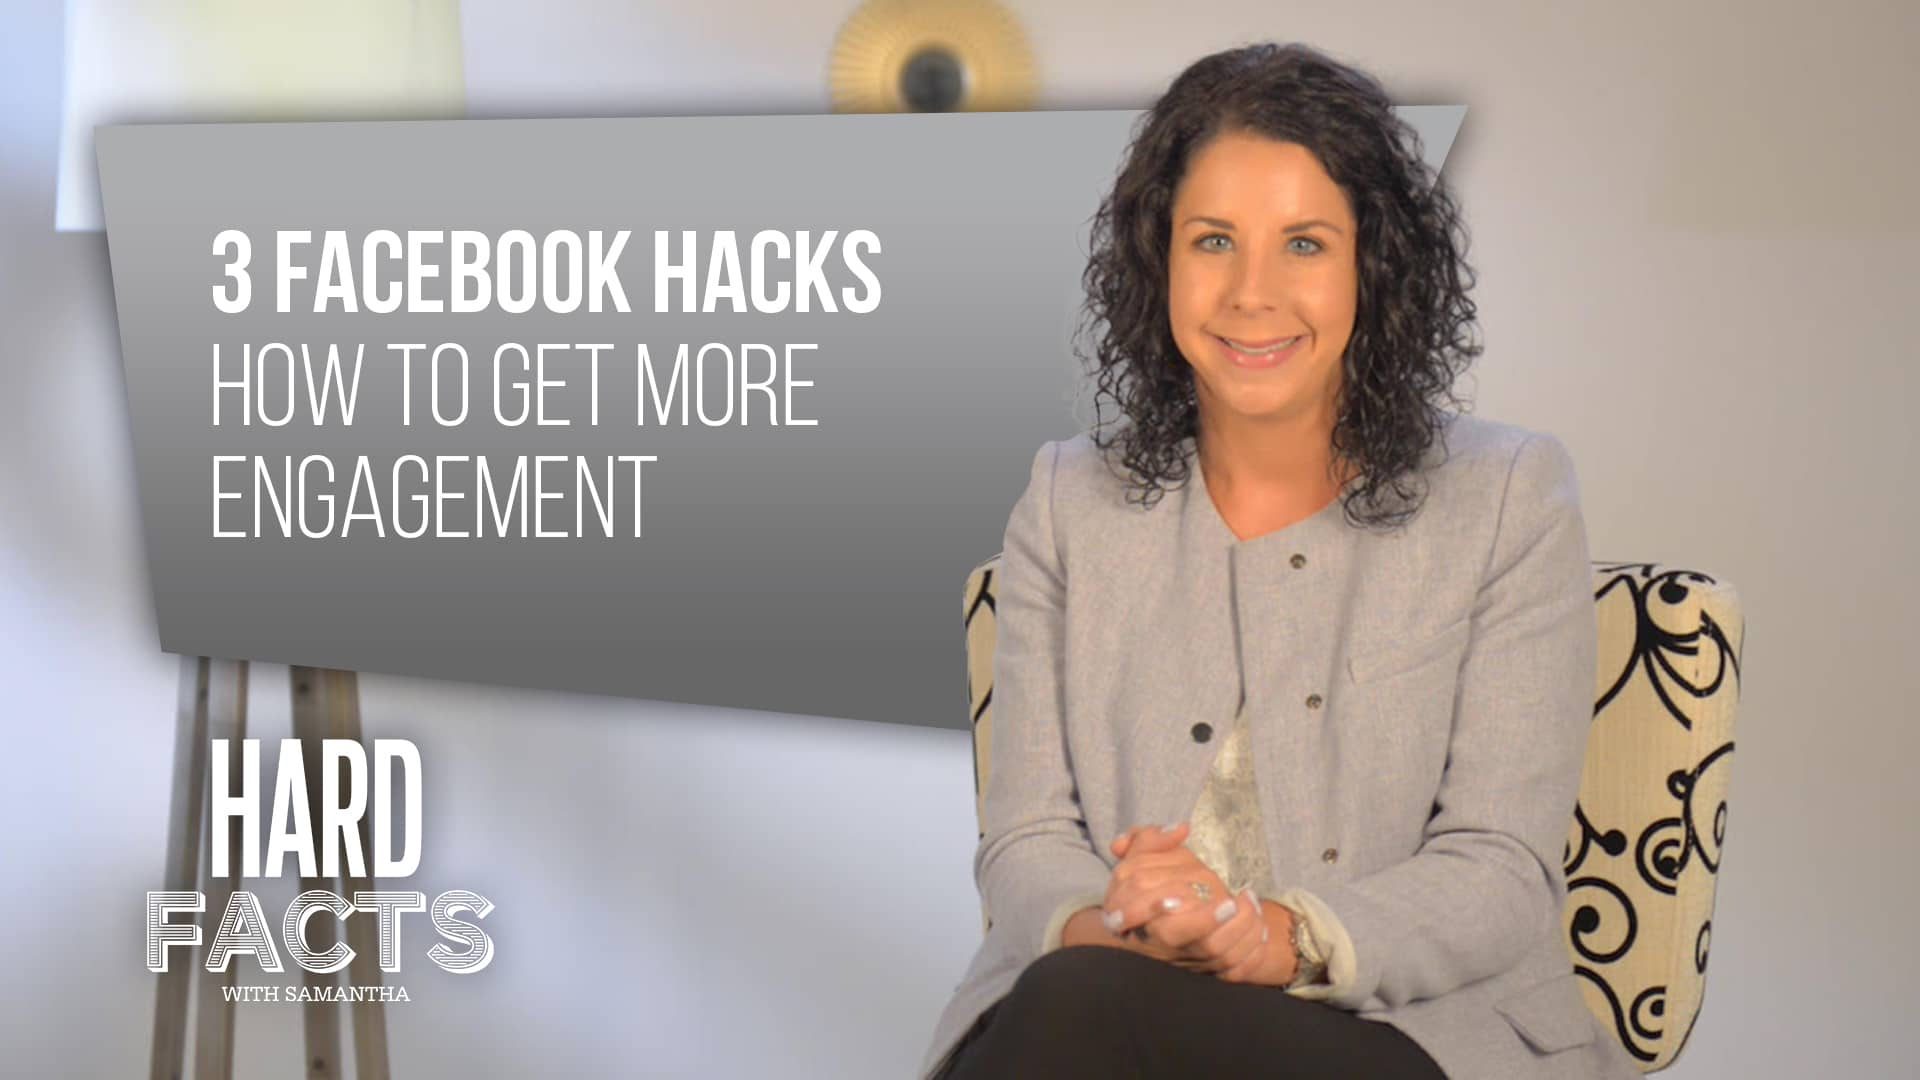 3 Facebook Hacks – How to Get More Engagement